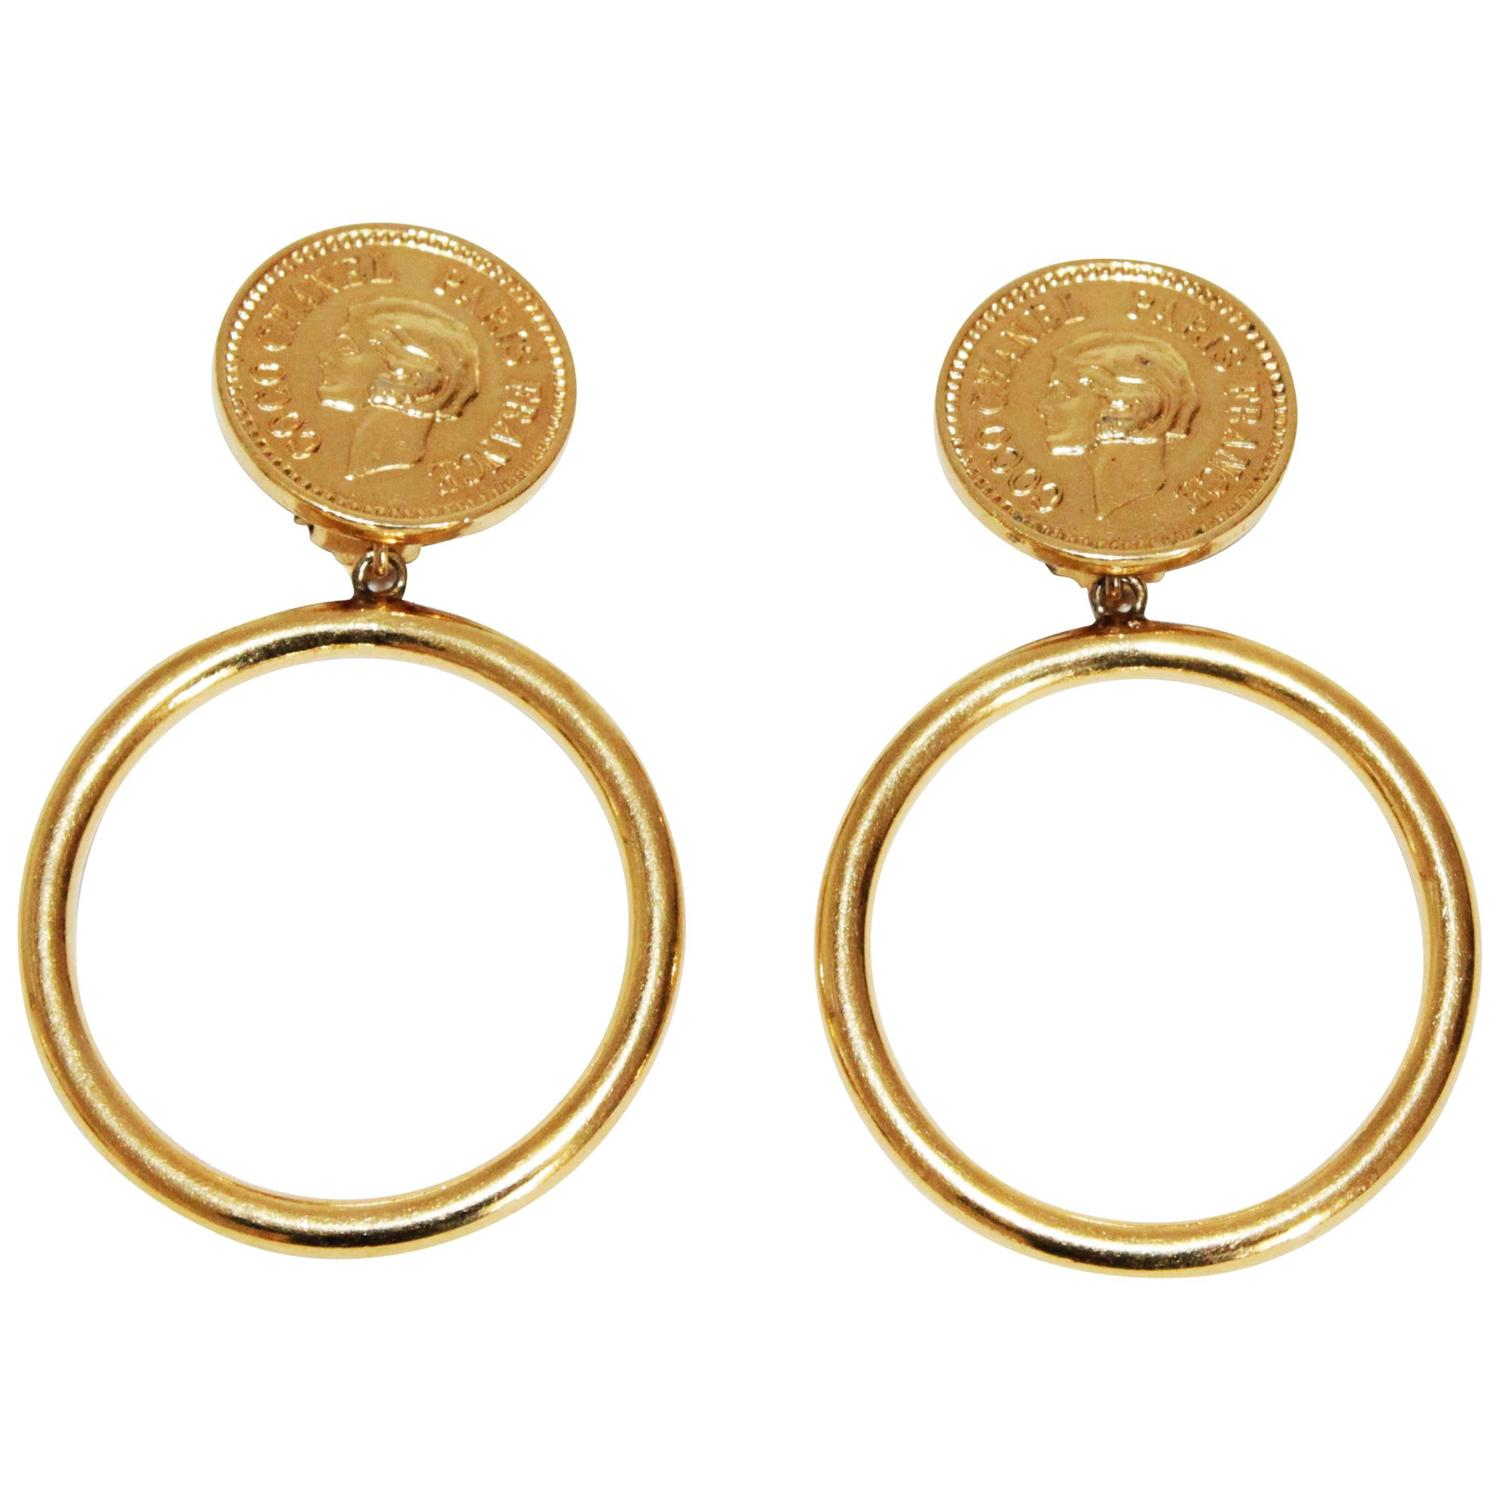 Coco channel earrings : Rare coco chanel haute couture earrings c at stdibs